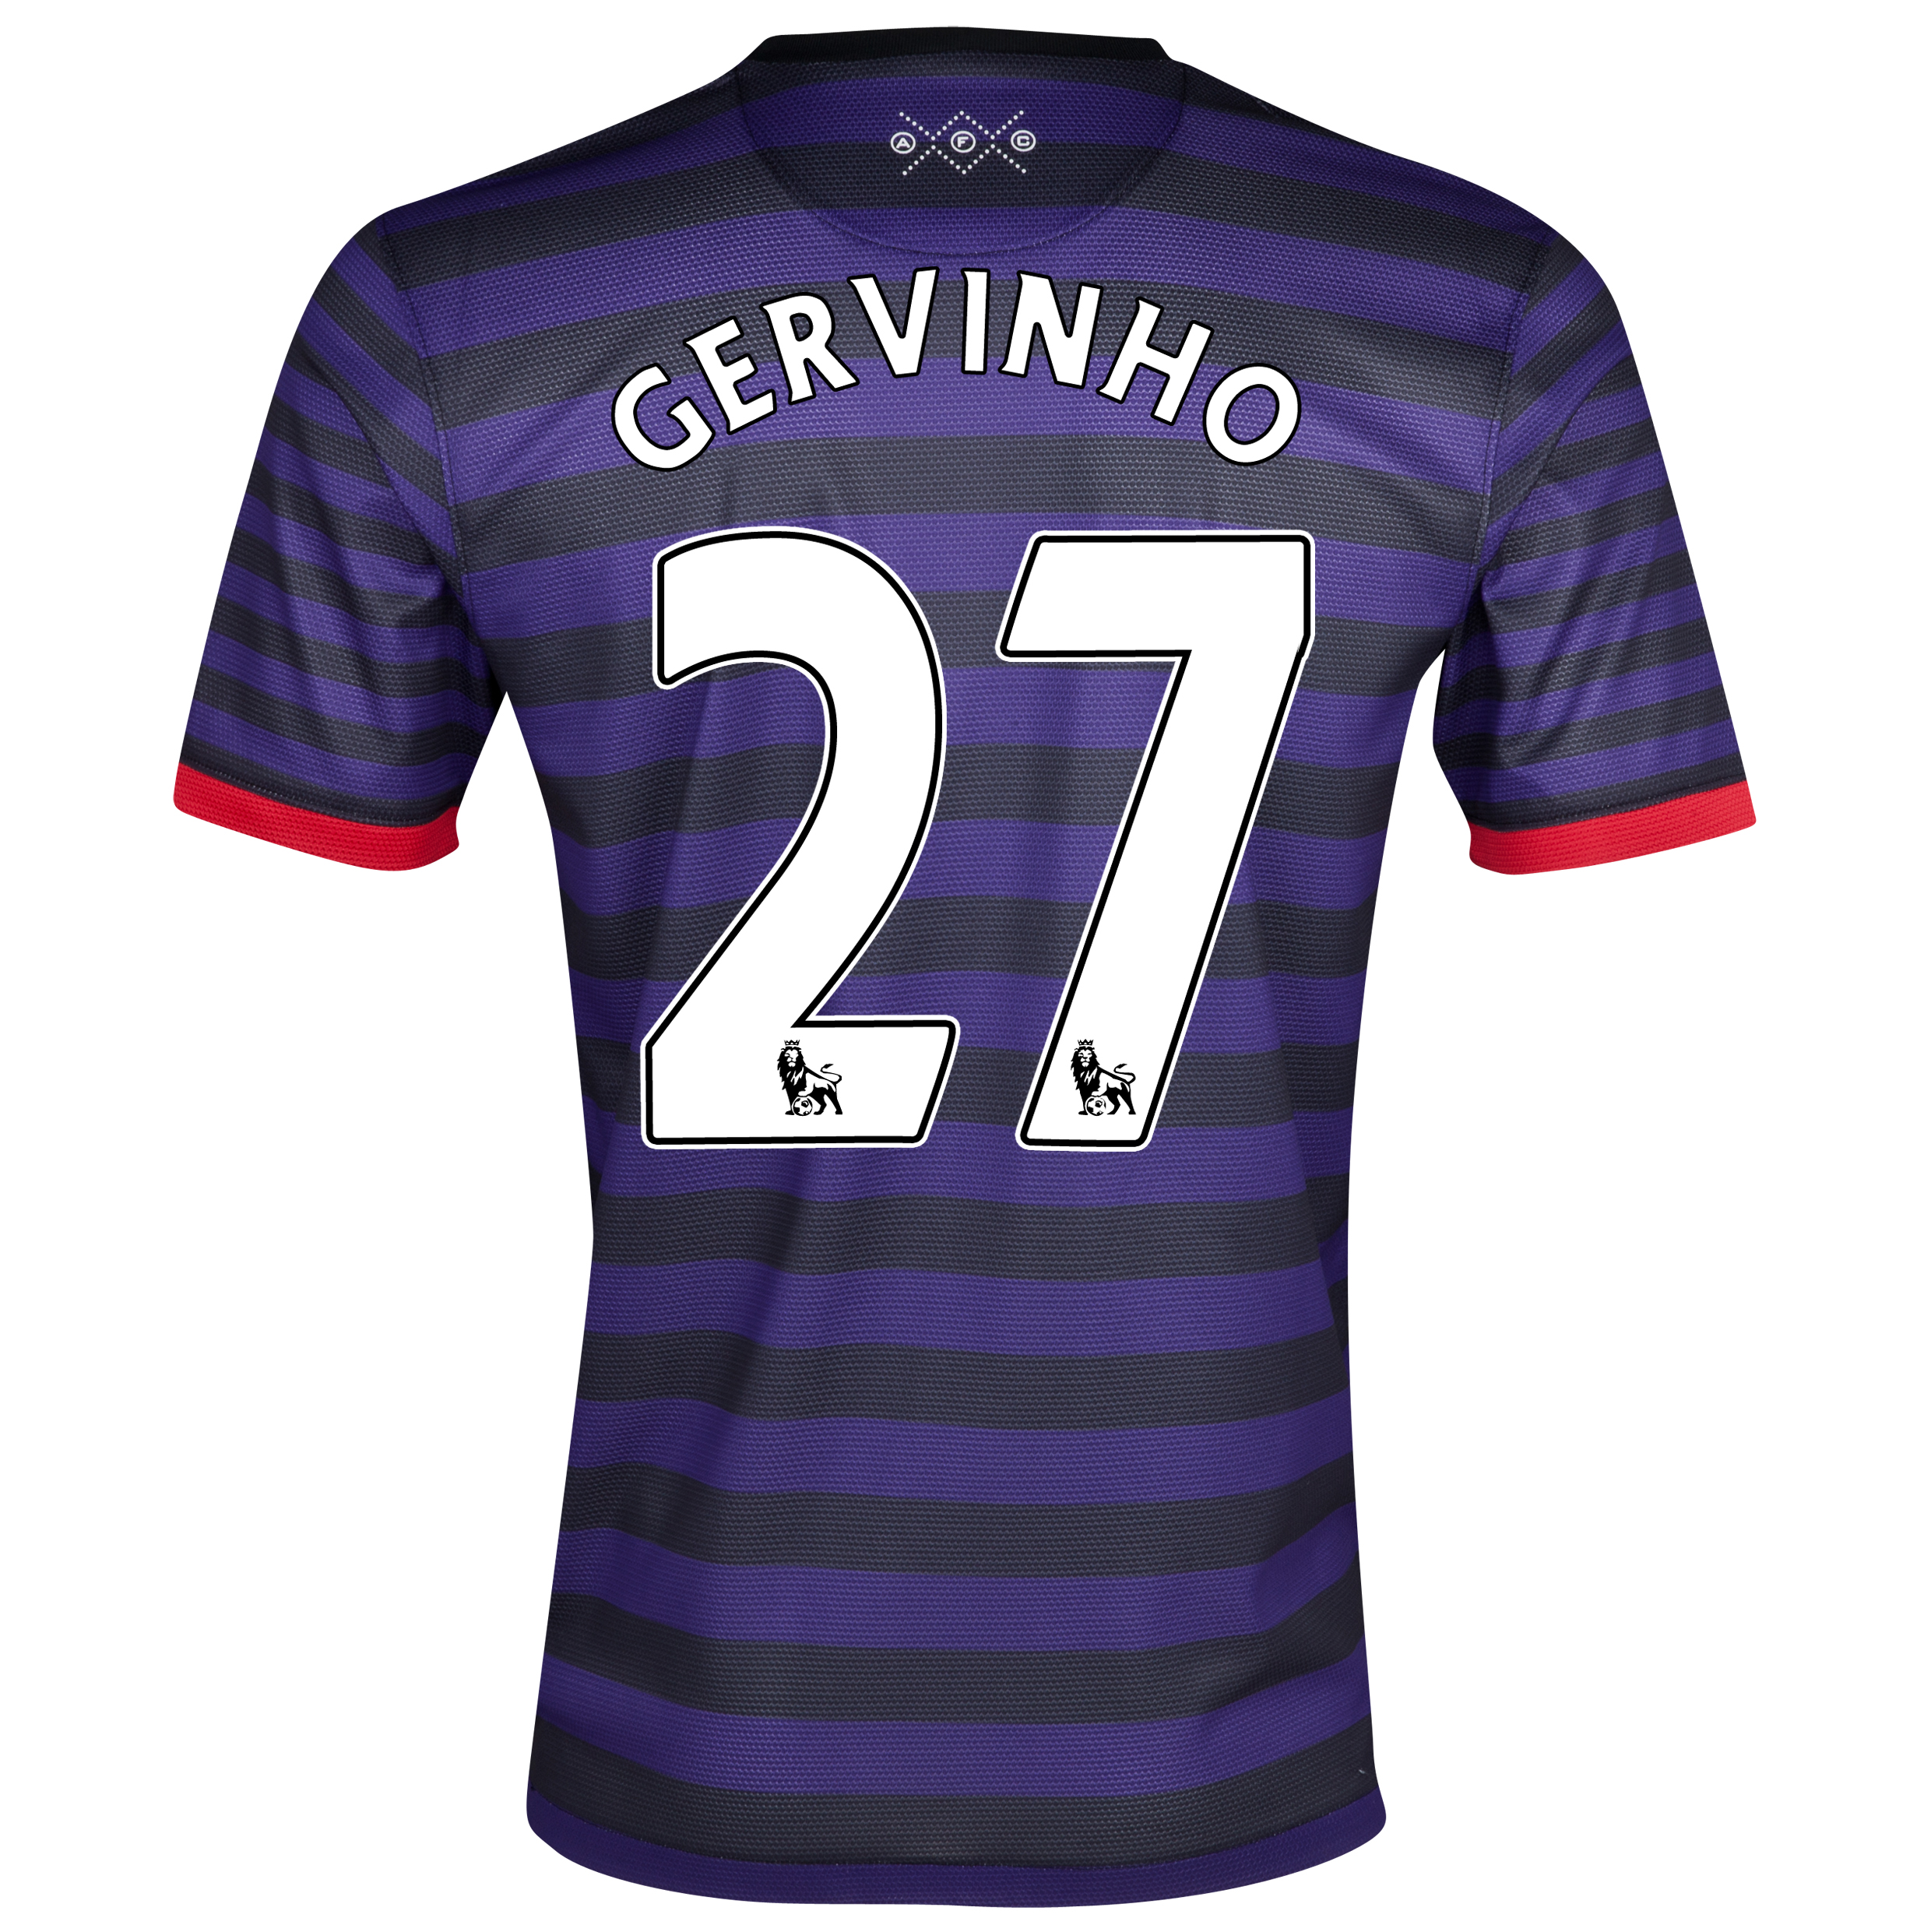 Arsenal Away Shirt  2012/13 - Youths with Gervinho 27 printing